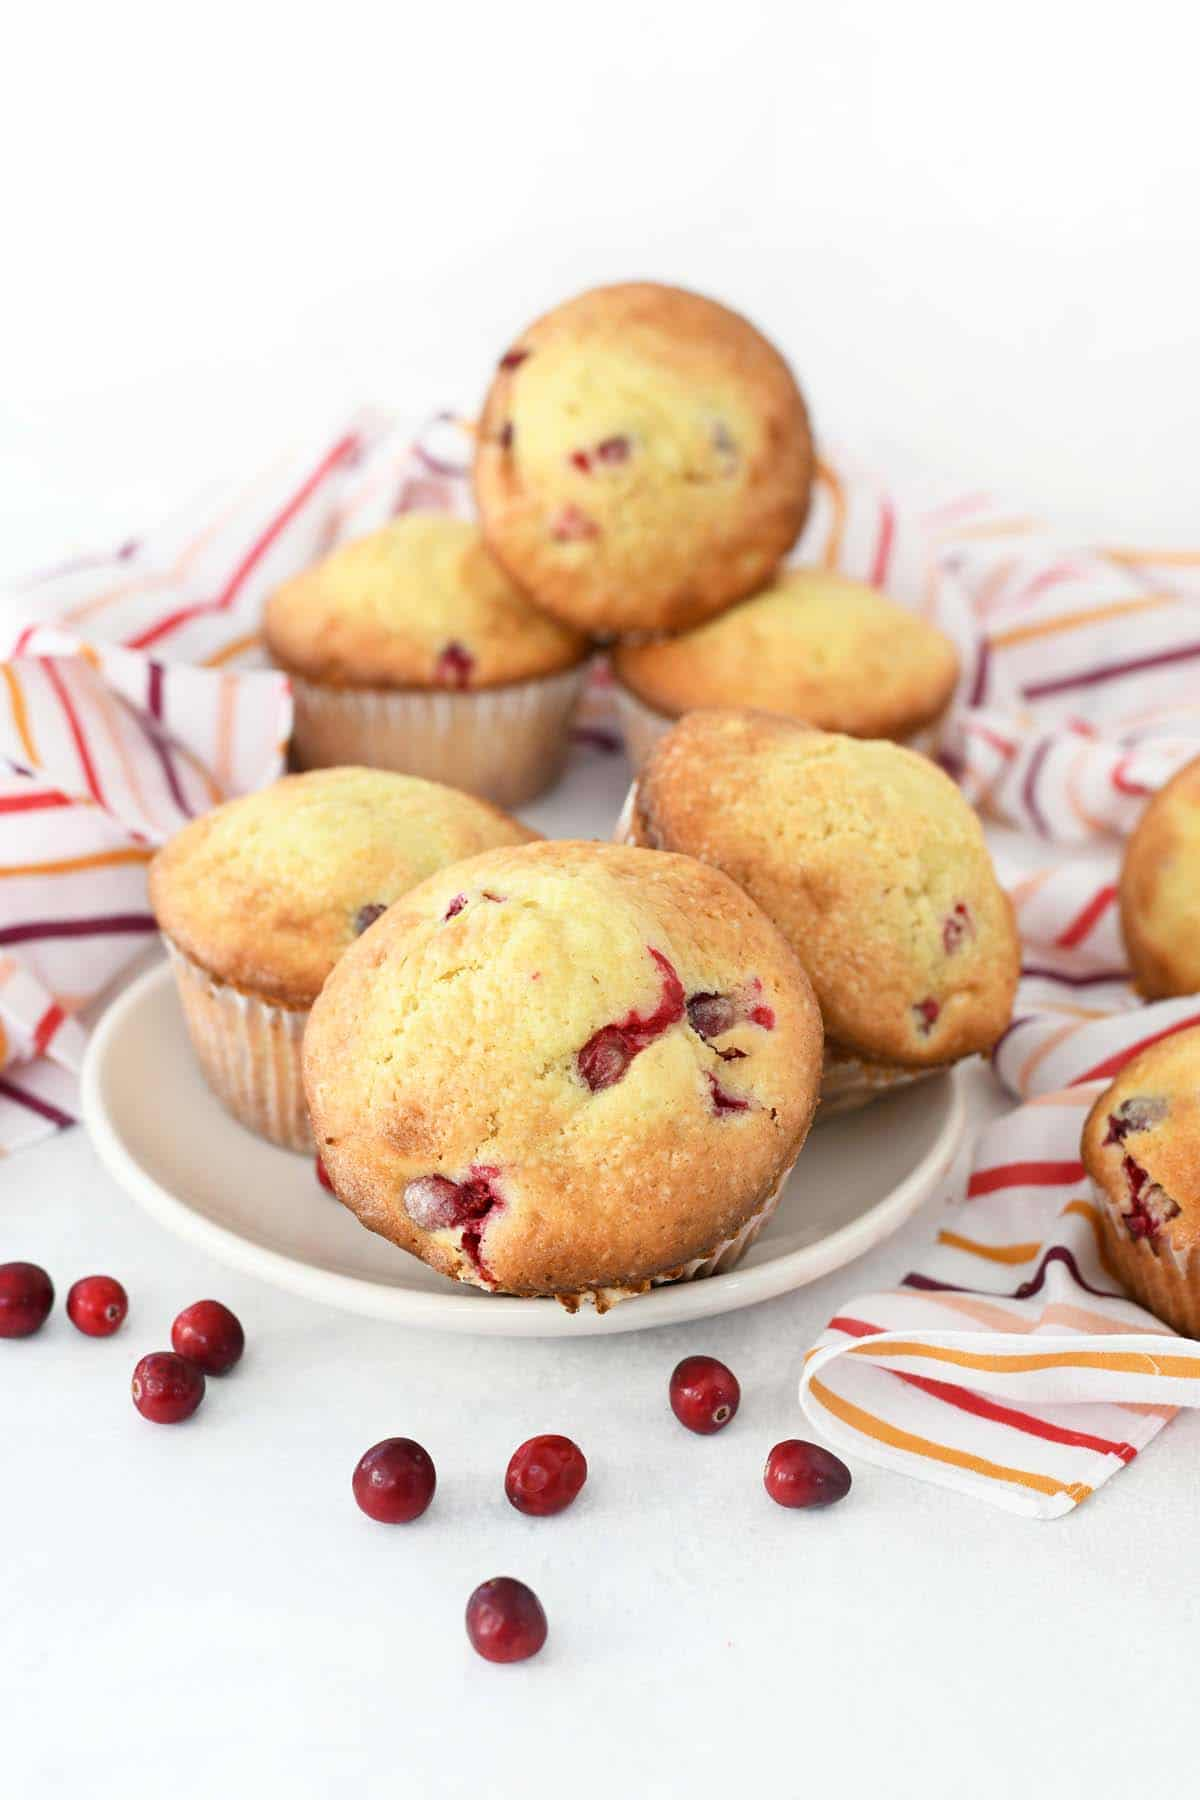 Cranberry Orange Muffins in a bowl with striped napkins and whole cranberries.